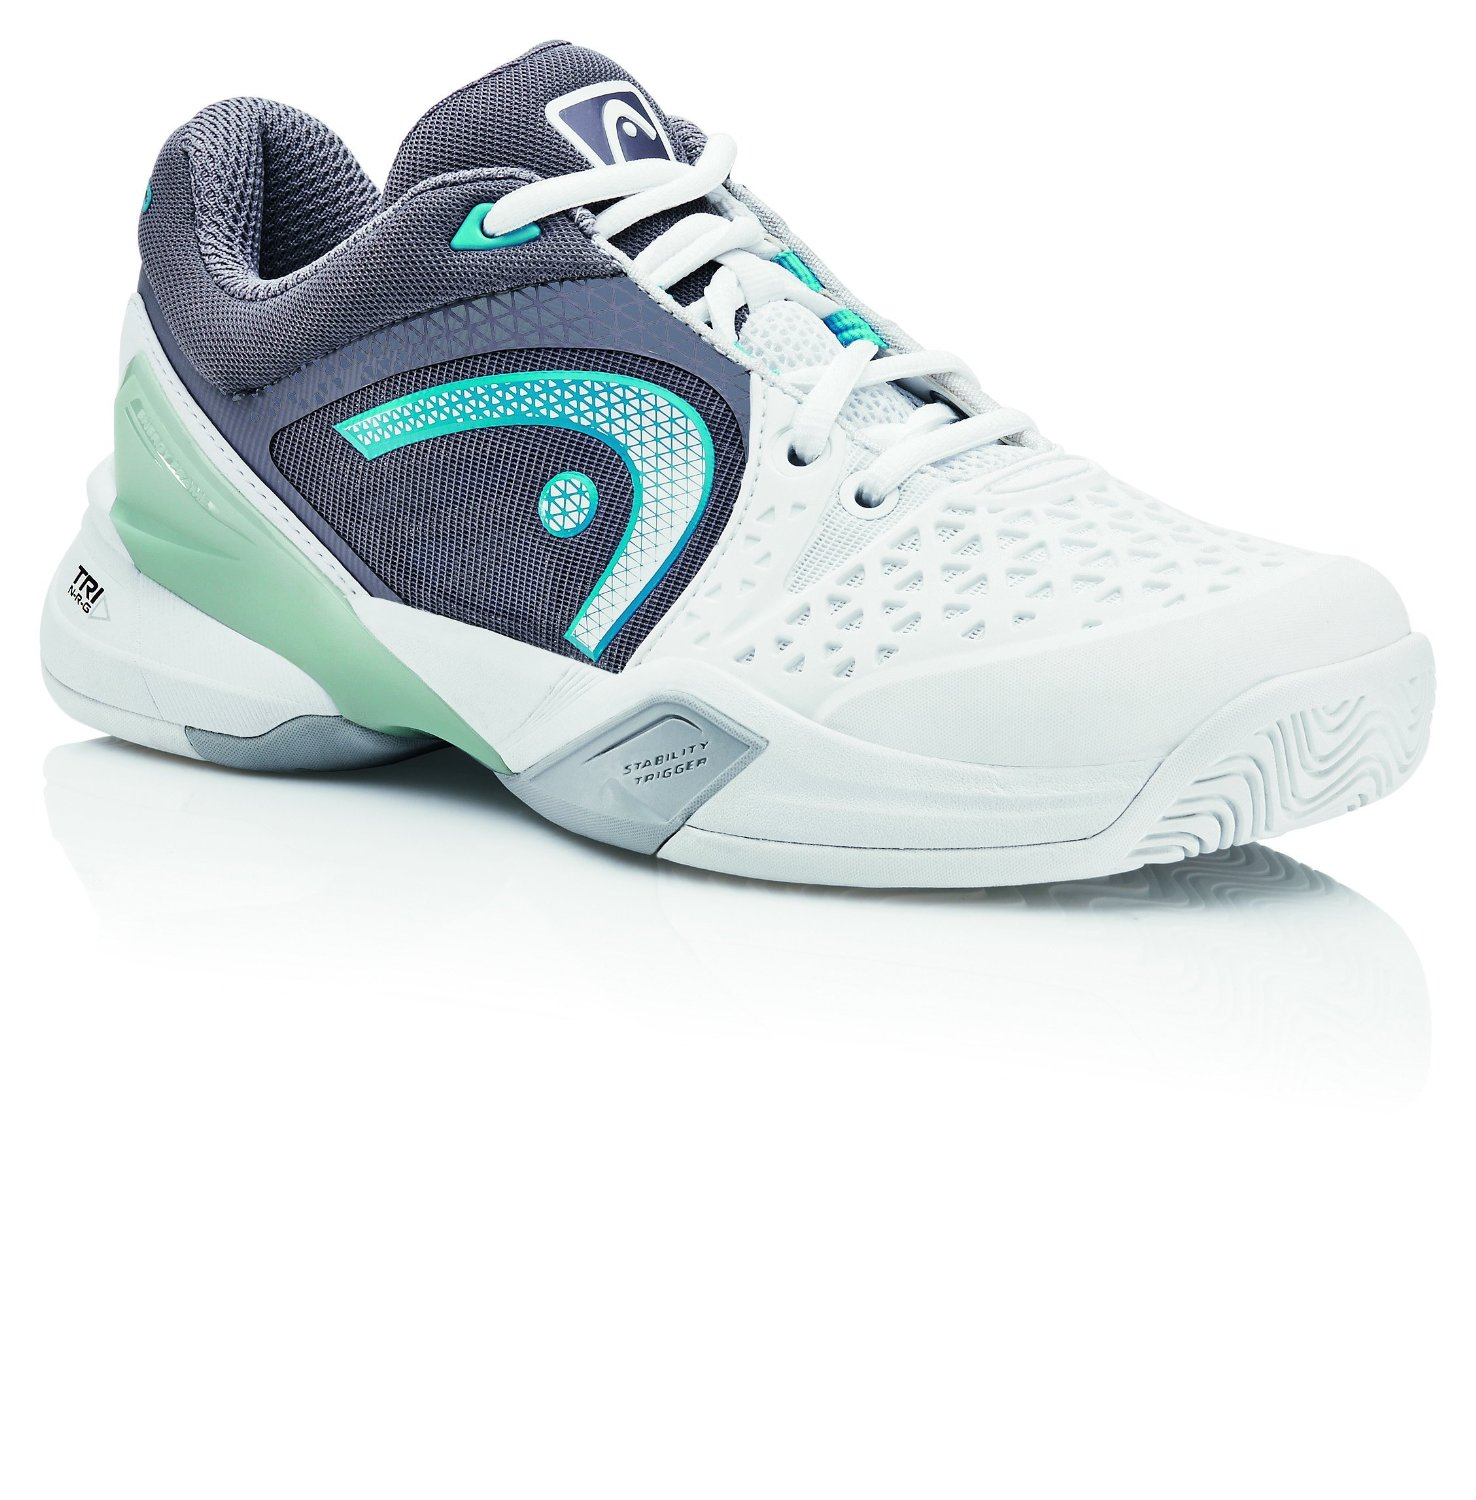 281675011d8 Head Revolt Pro Women s Tennis Shoe (White Cyan Blue)